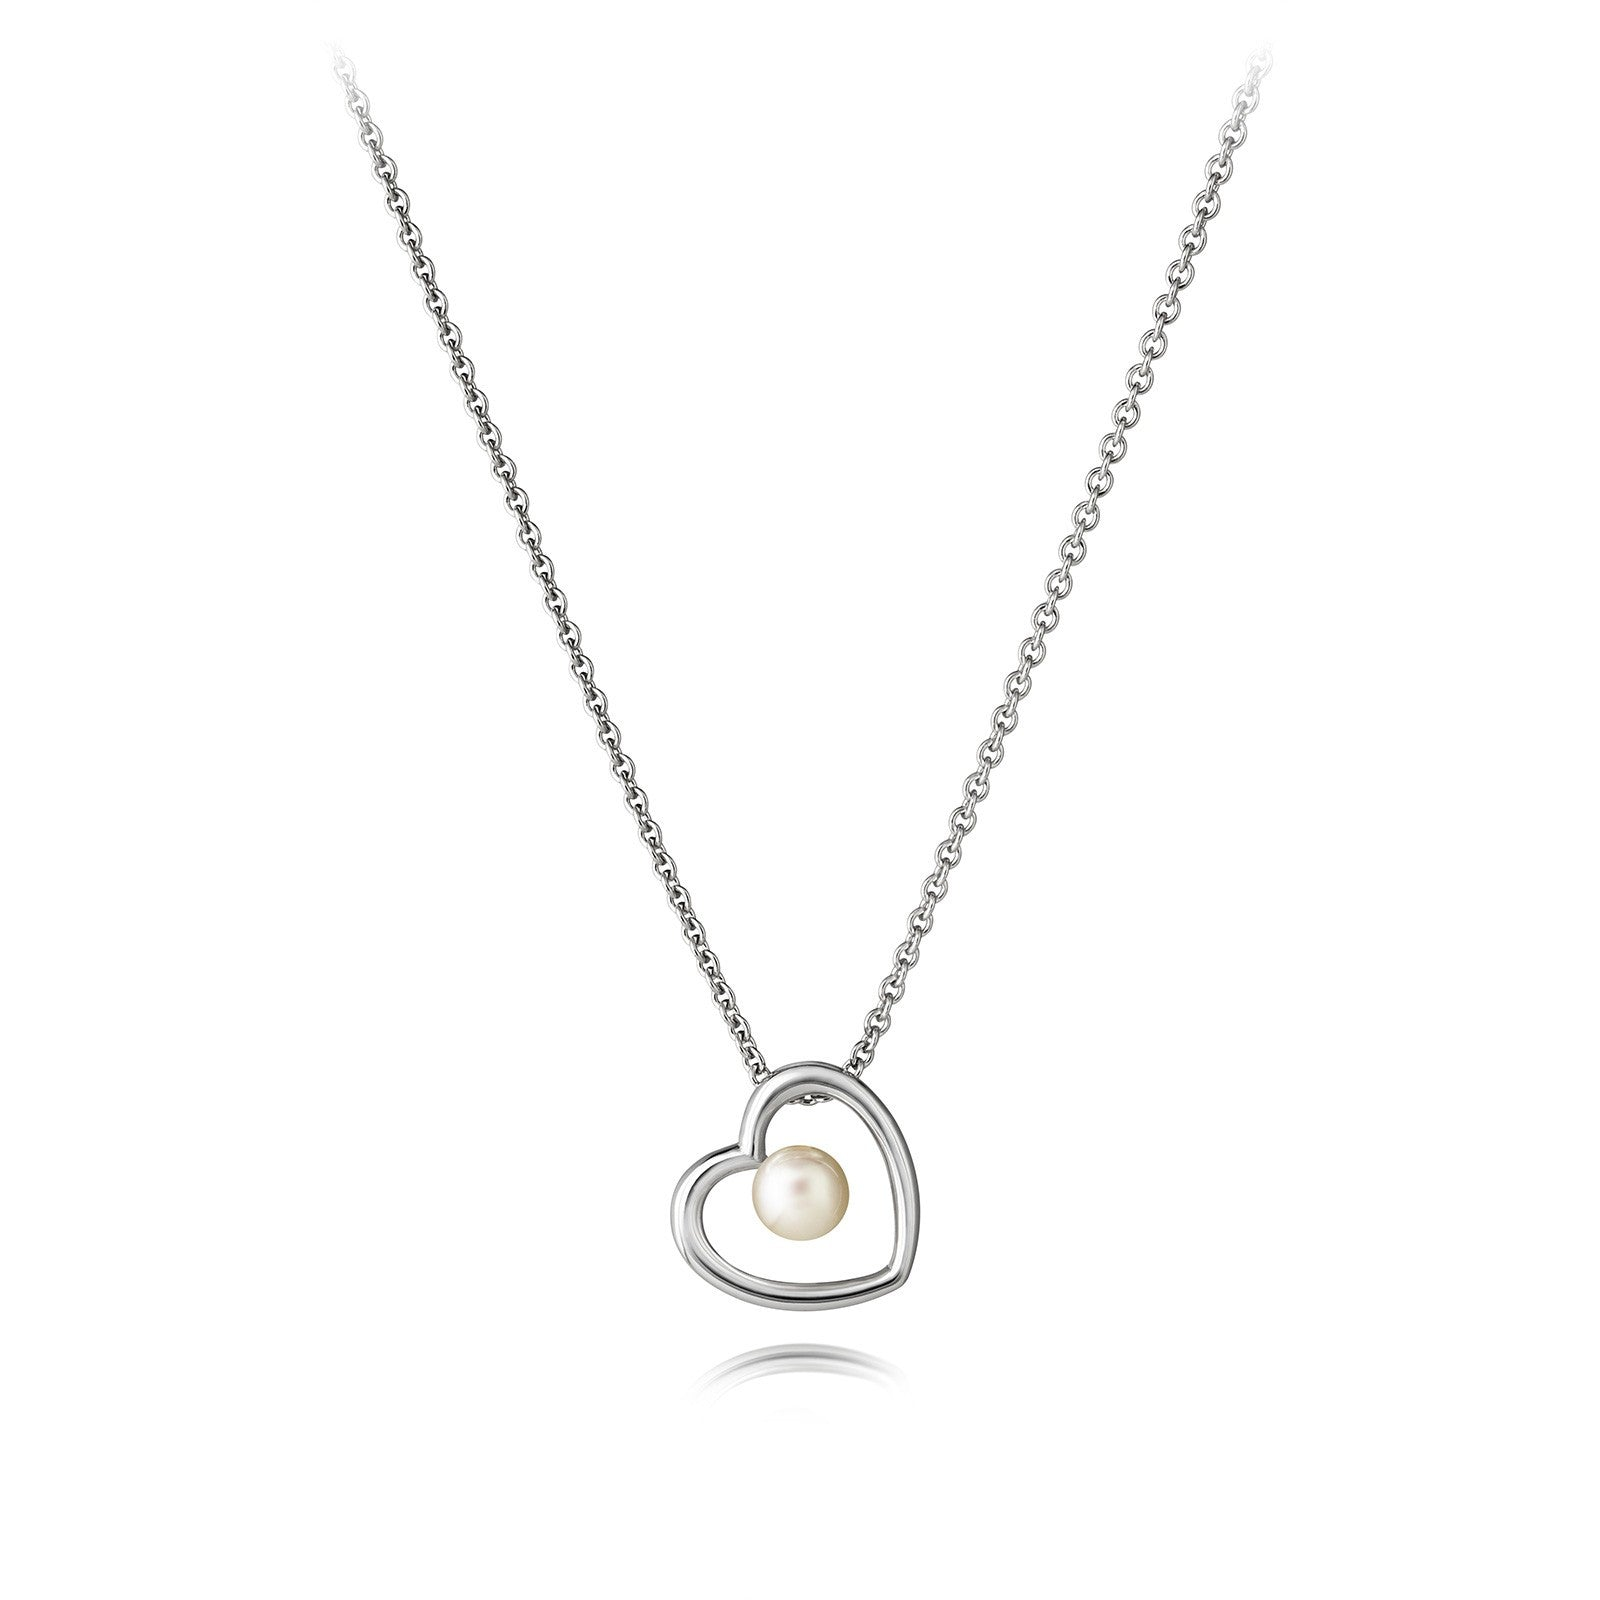 Aphrodite Heart Jersey Pearl Simple Pendant - CRED Jewellery - Fairtrade Jewellery - 2